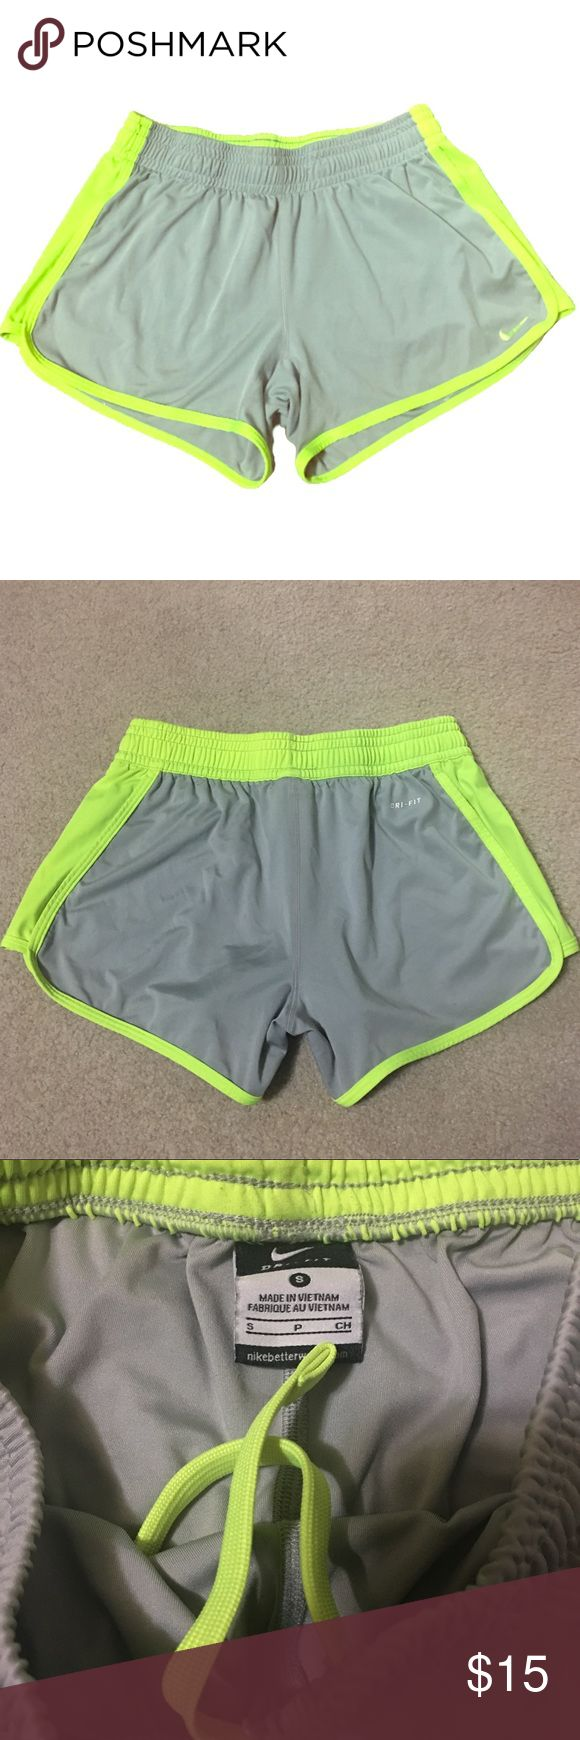 Nike dri fit neon detail shorts Light grey and neon green shorts   Waist tie and band that can be folded over   Dri fit comfortable material  In good gently used condition - no snags Nike Shorts